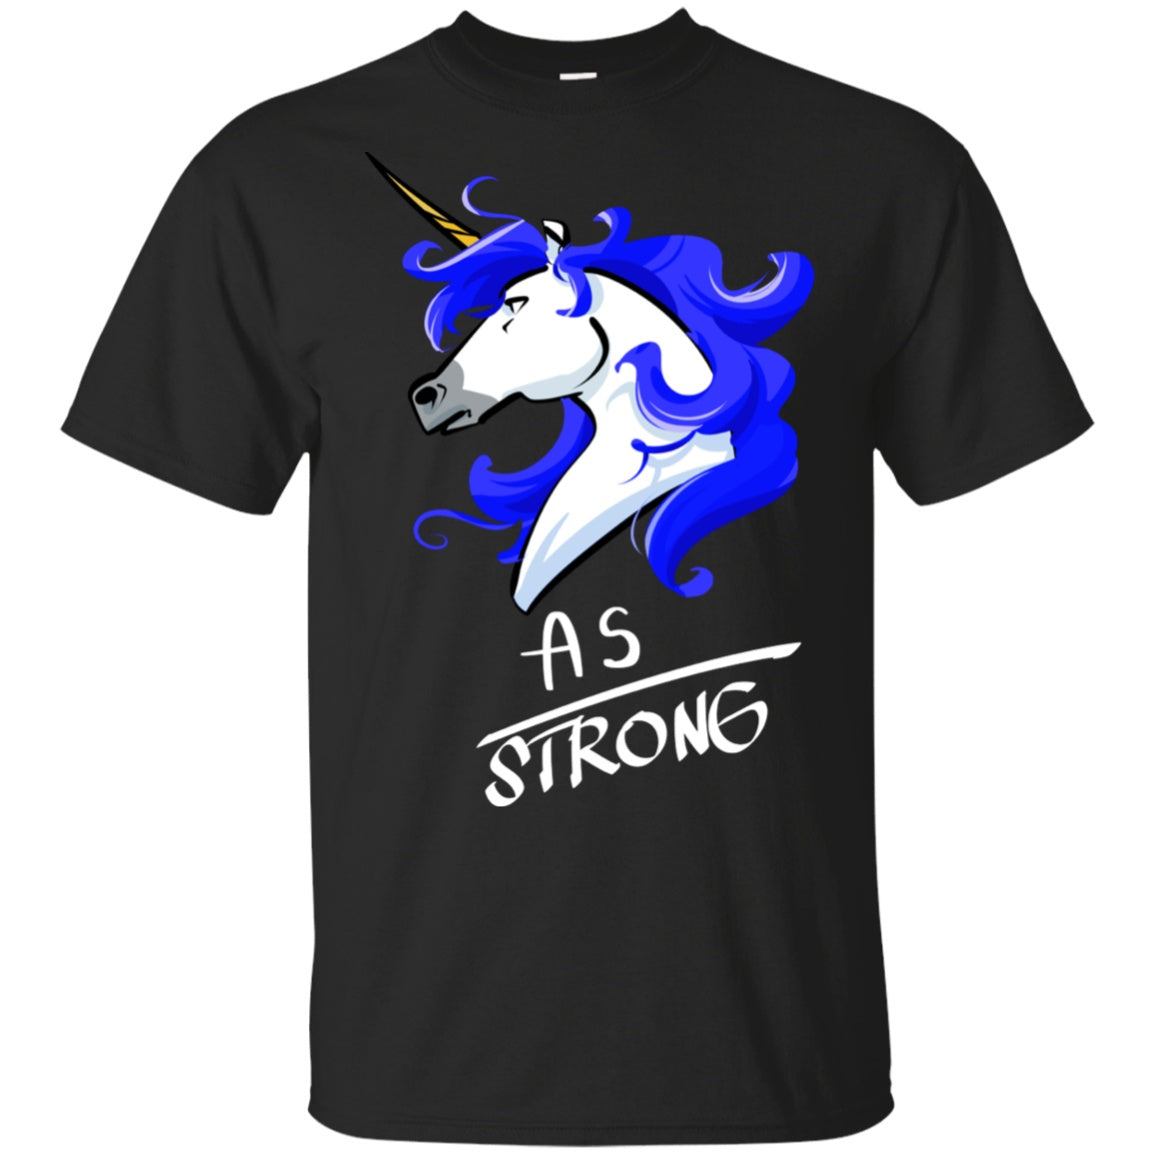 AS Strong Unicorn Cotton Unisex T-Shirt - The Unchargeables